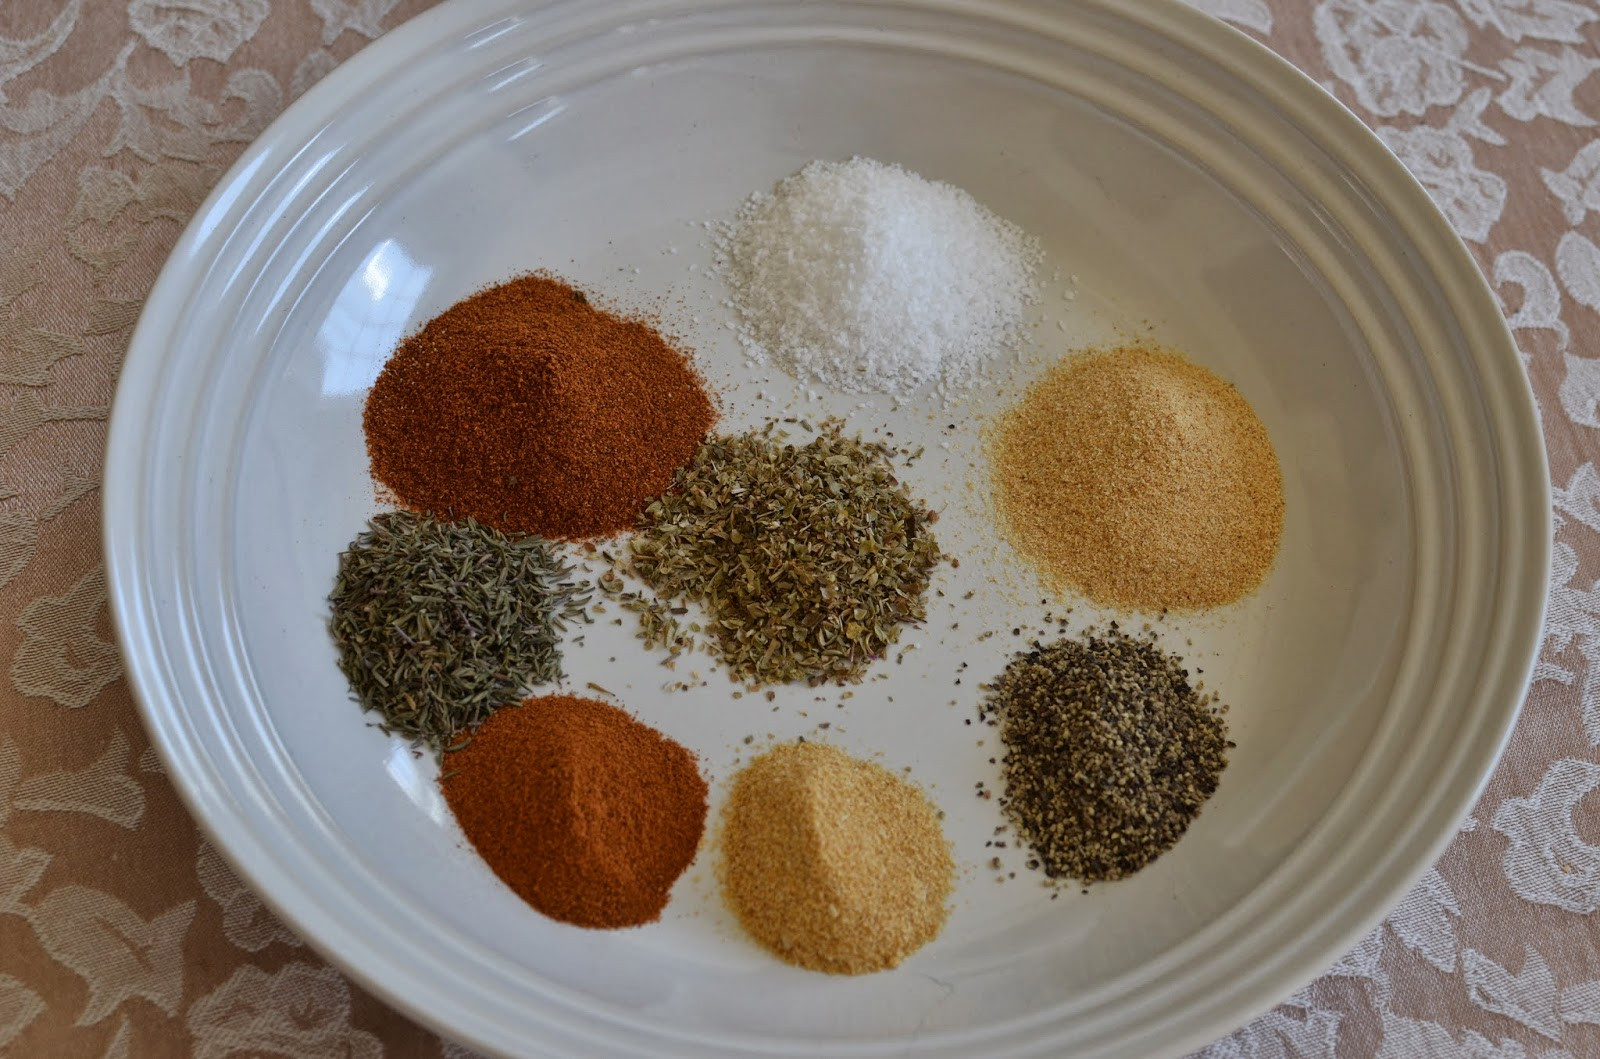 Emeril's spice mix for round steaks - recipe with lots of how to photos.